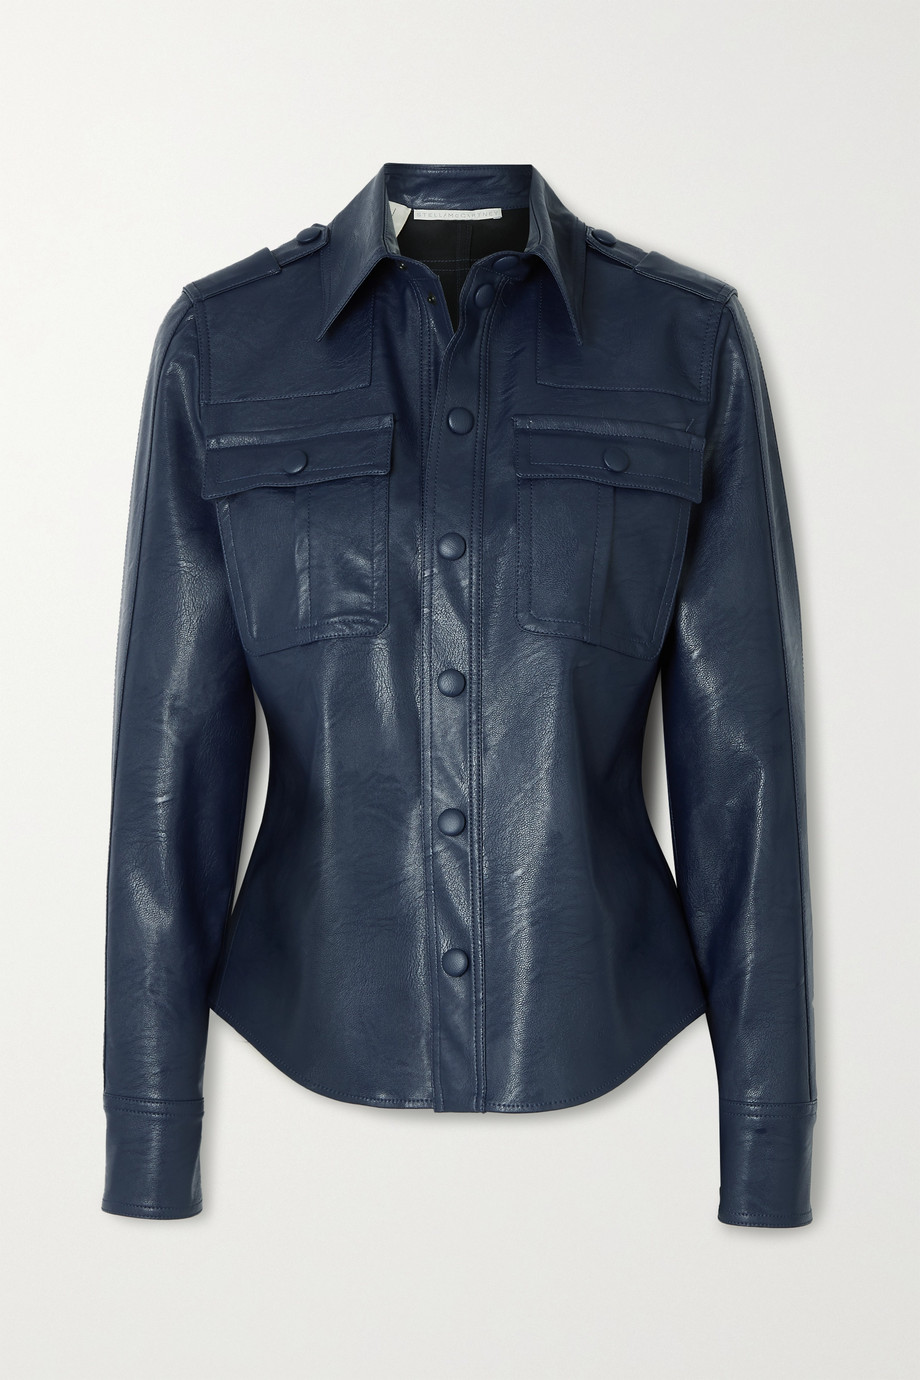 Stella McCartney Hill vegetarian leather shirt